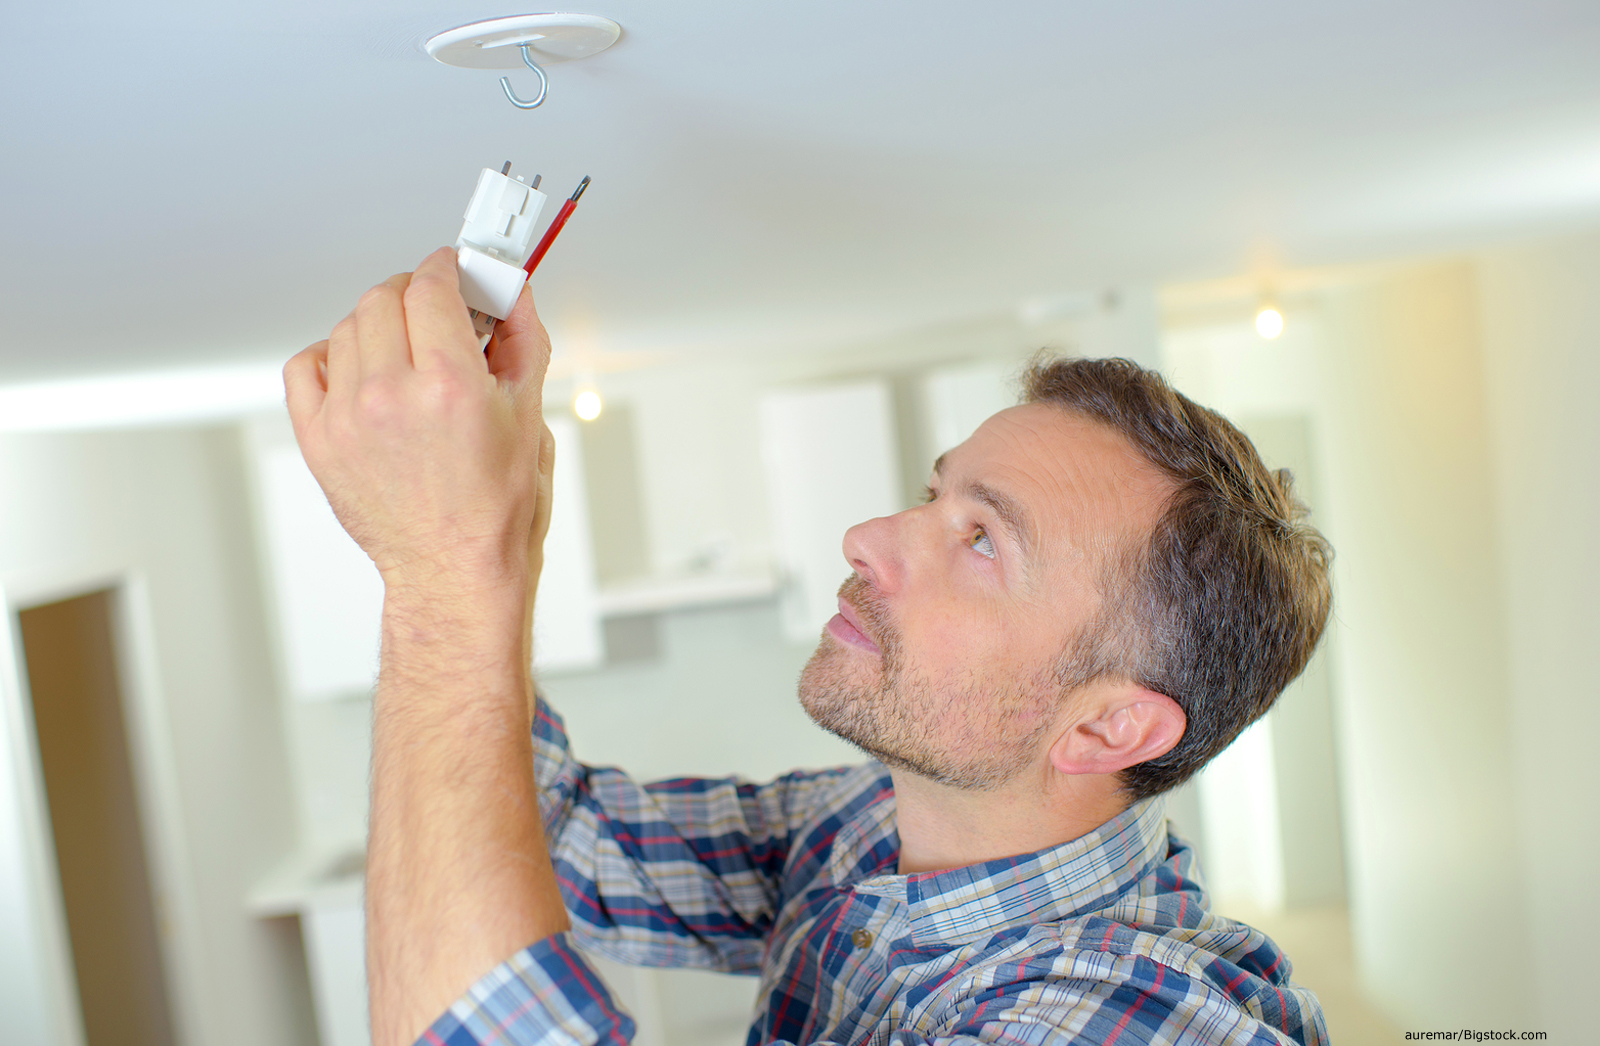 Residential Security Means More than Door Alarms and Motion Detectors